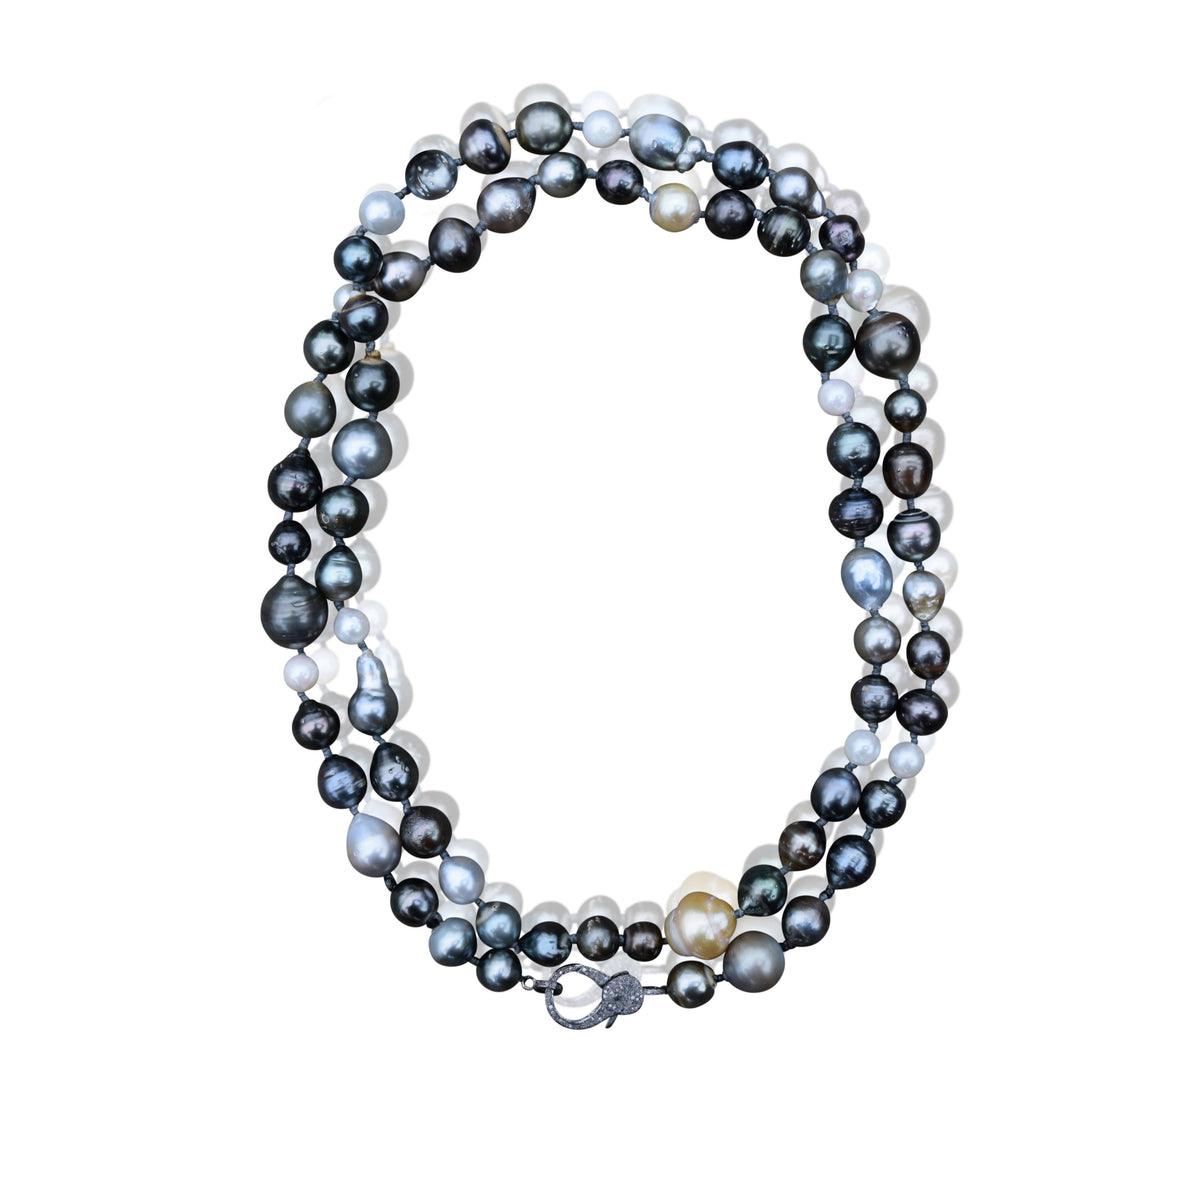 Short Tahitian Pearl Necklace with Clasp